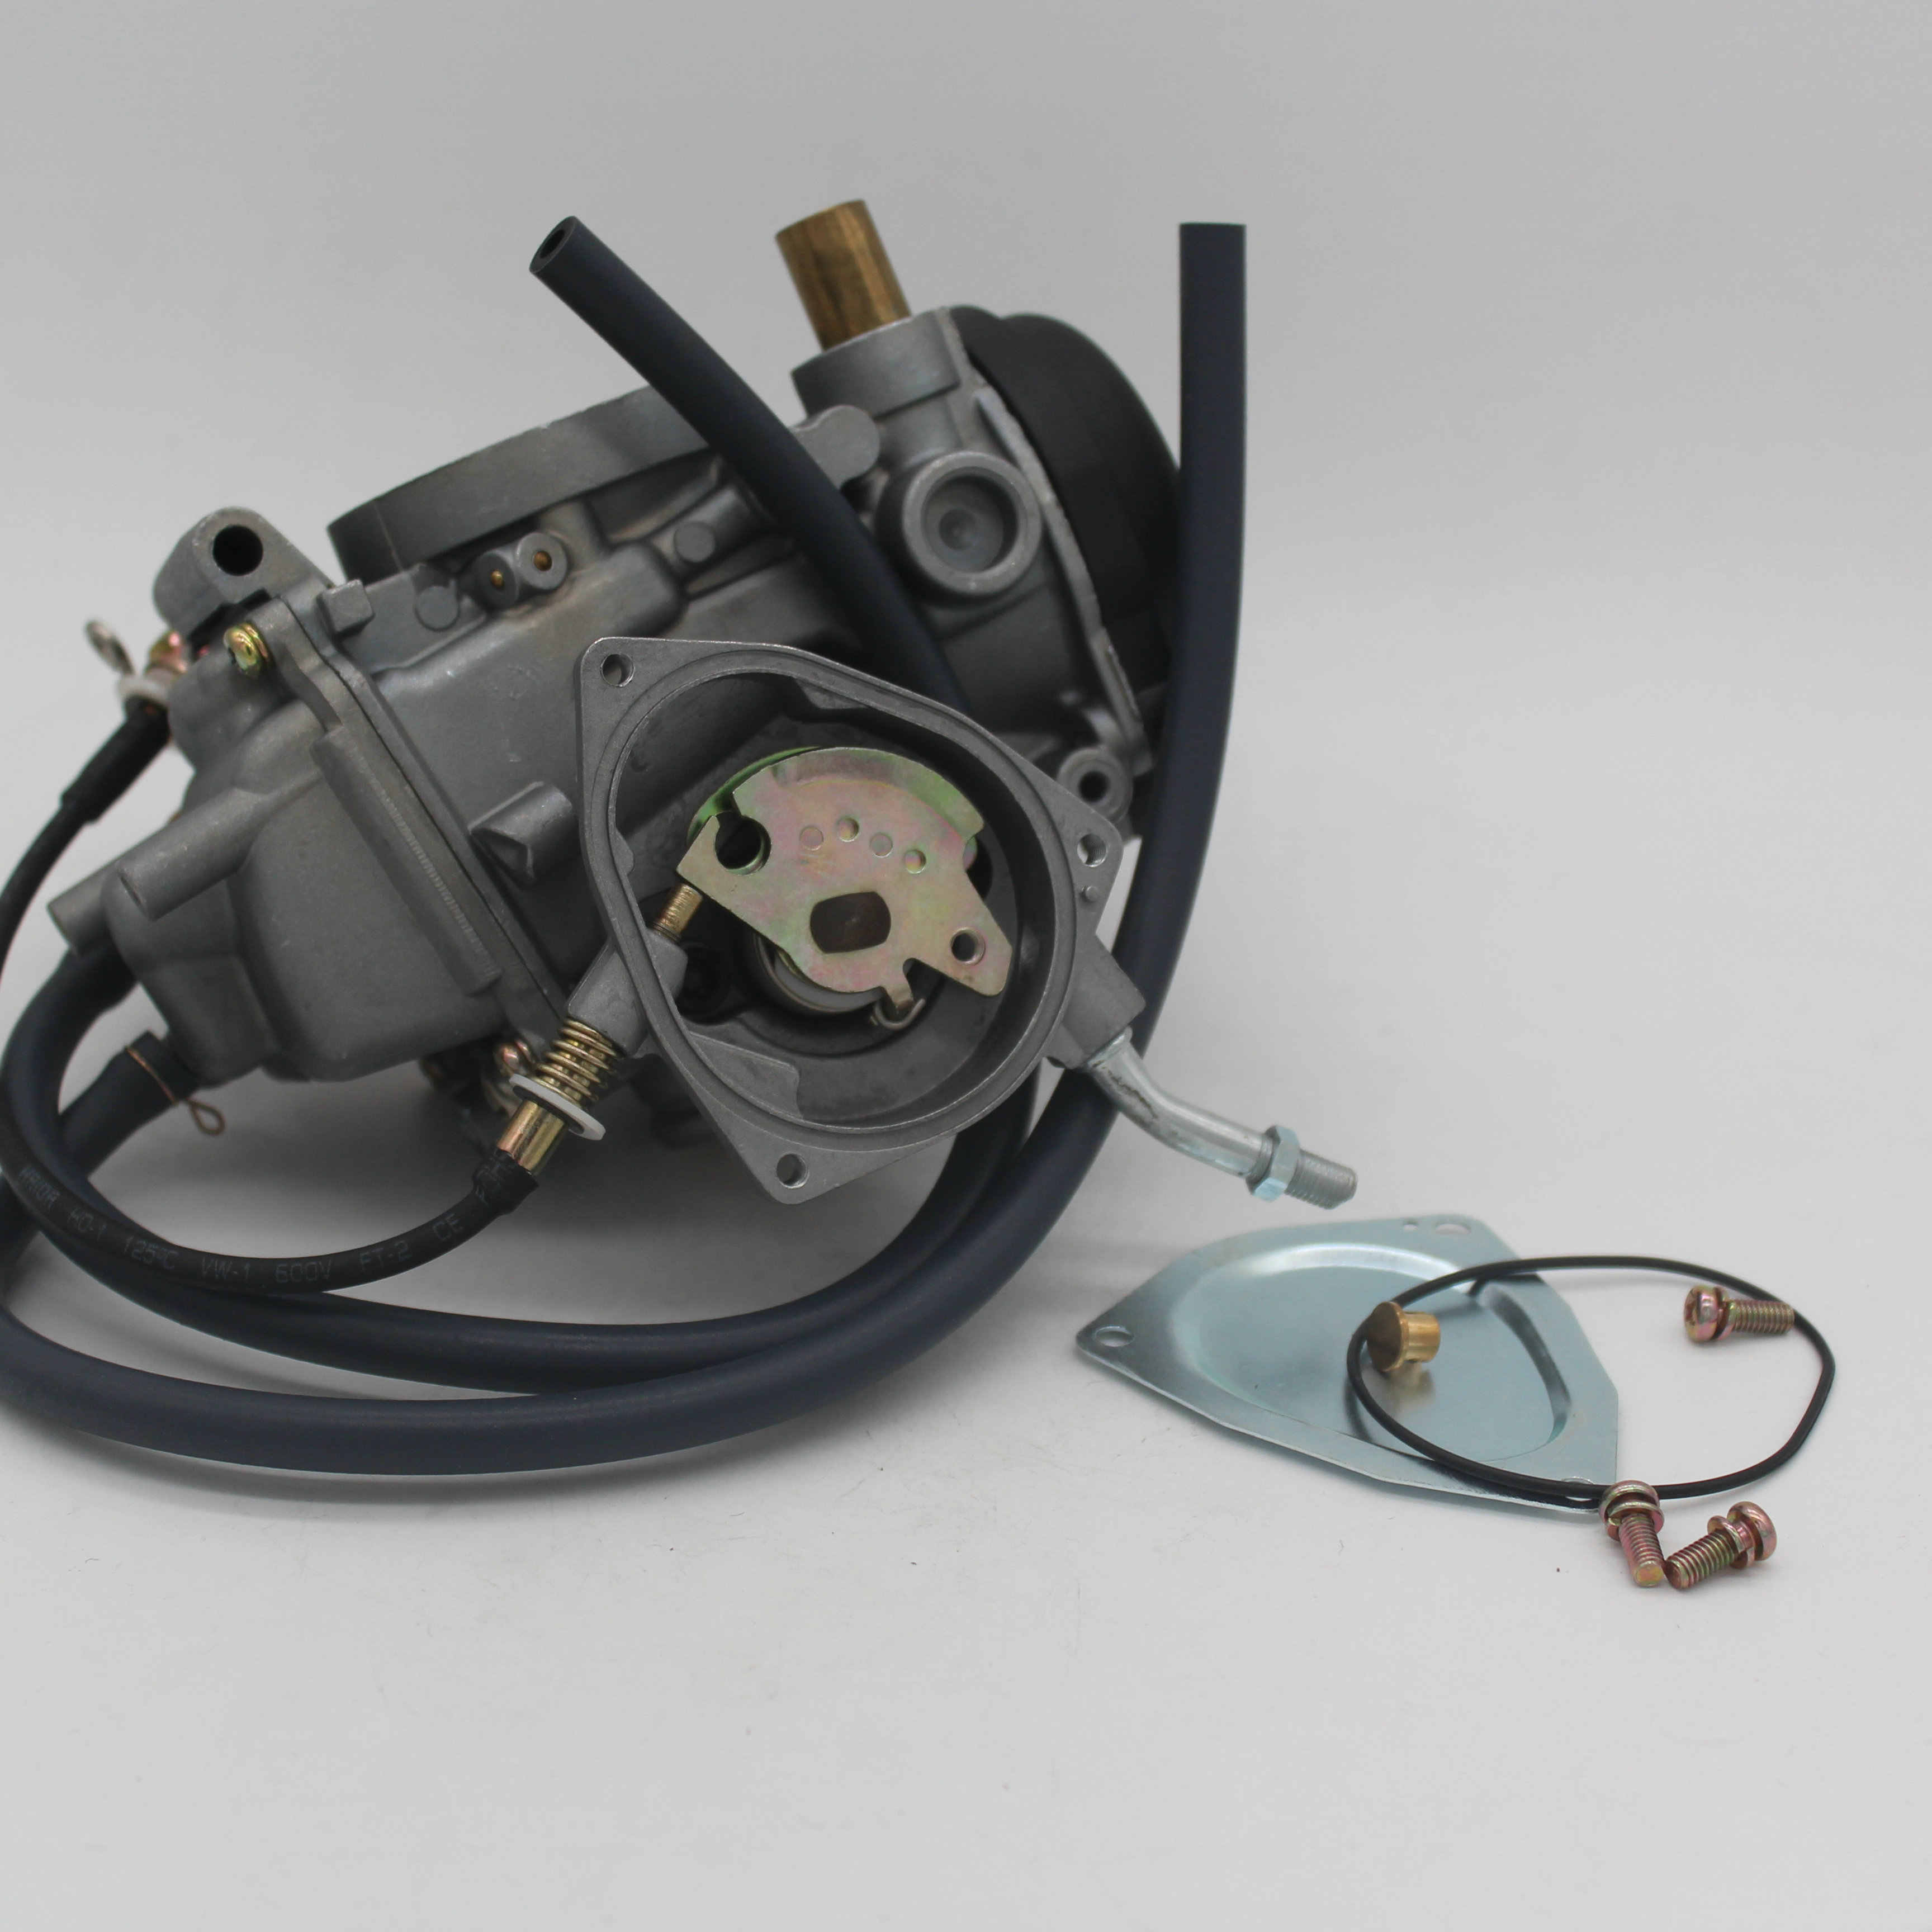 PD33J 33mm Motorcycle carburetor fit for YAMAHA KODIAK 450 YFM450 4X4  2003-2005 BRUIN 350 2WD 4X4 CARB motorcycle accessories